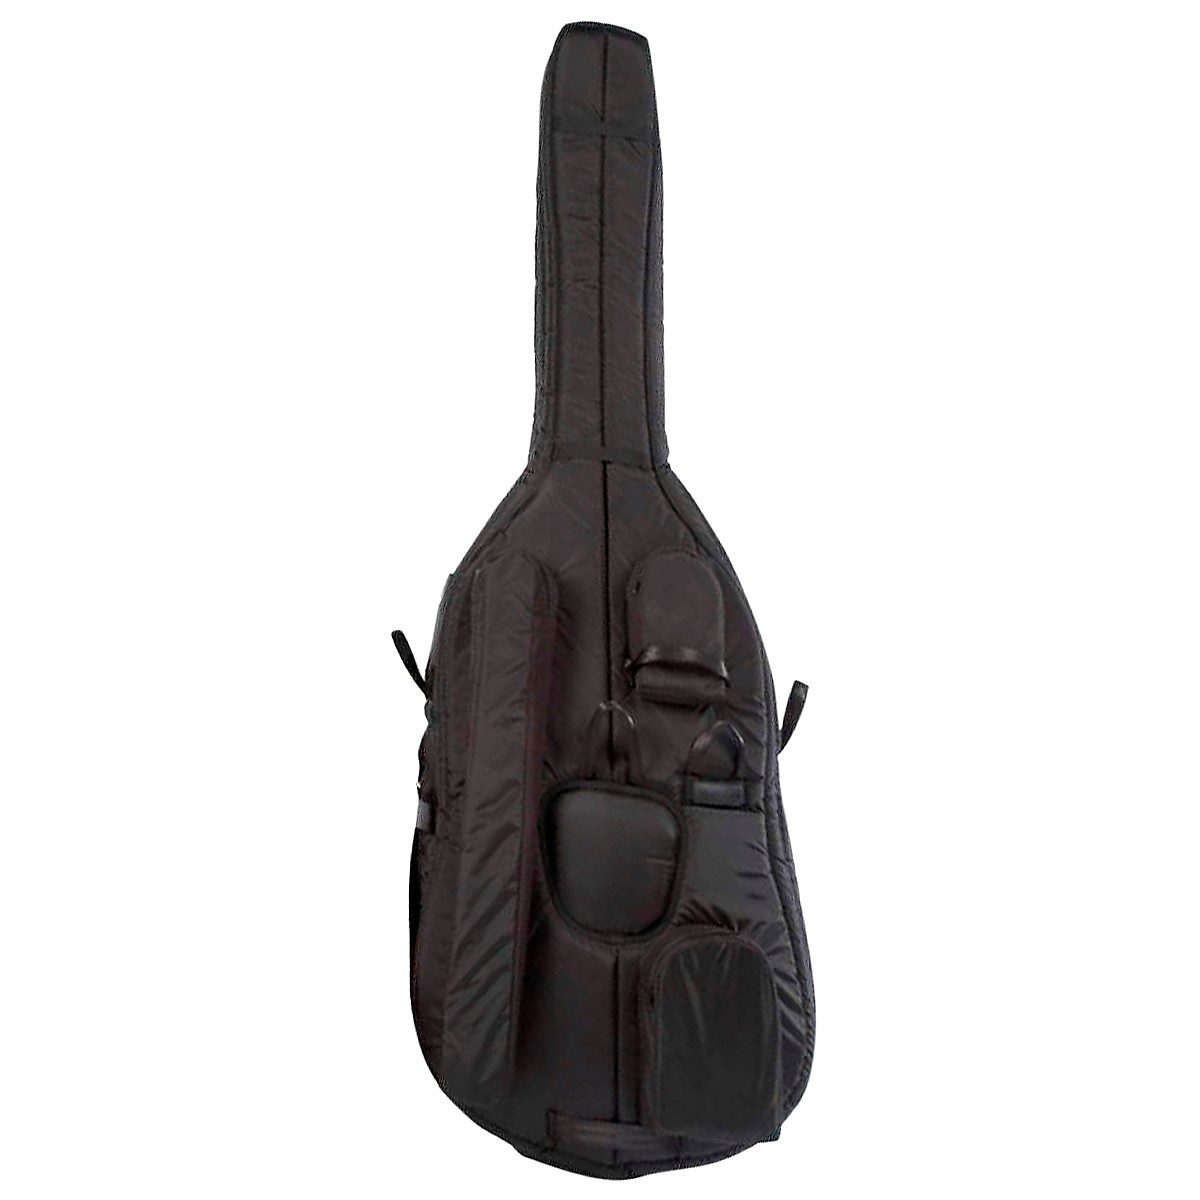 Mooradian Deluxe 5/8 Double Bass Bag